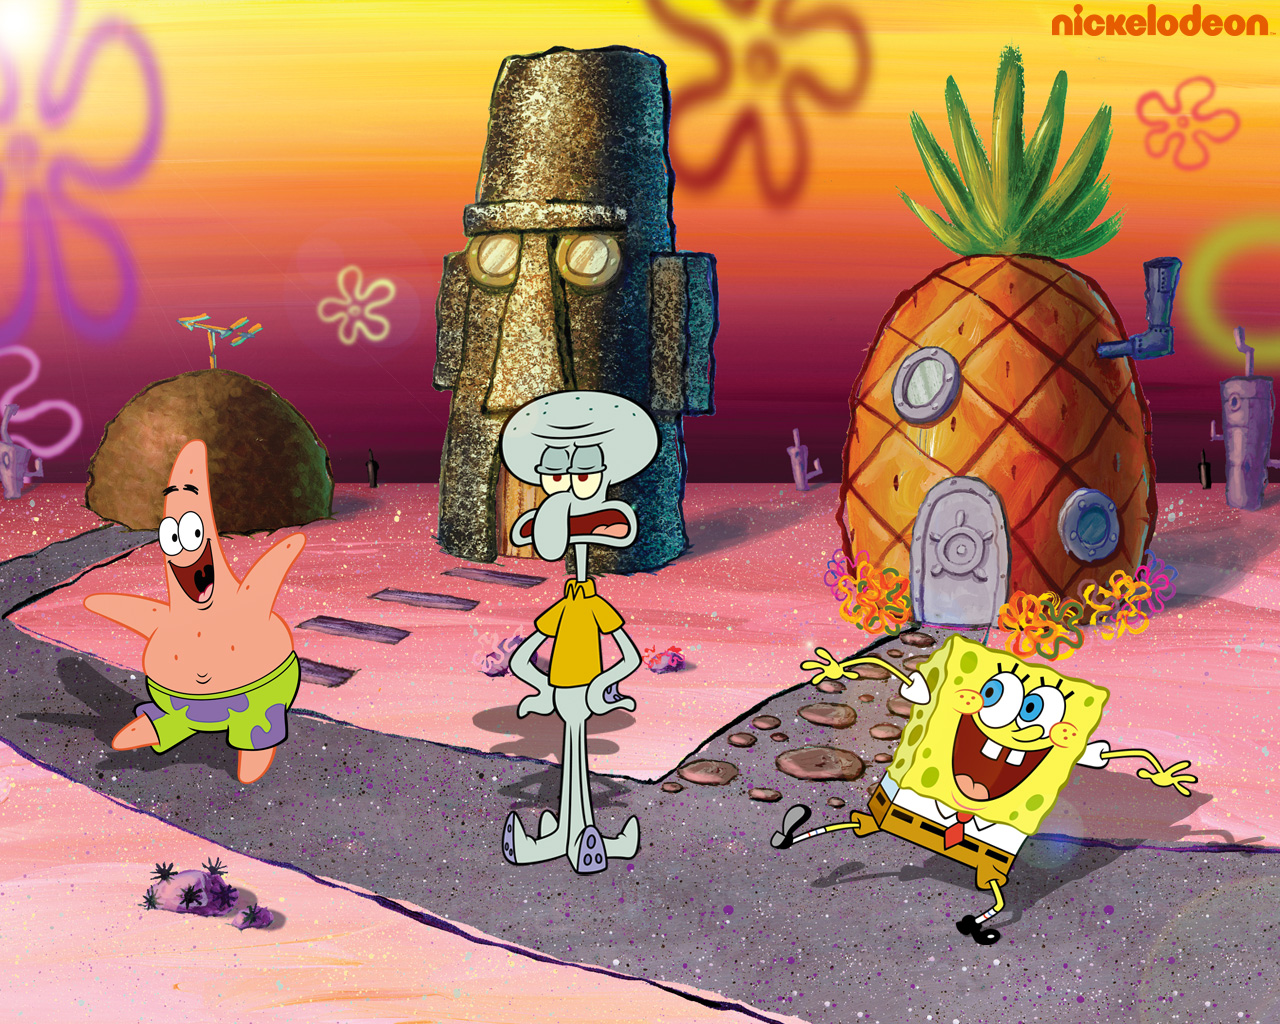 Spongebob, Patrick and Squidward Обои